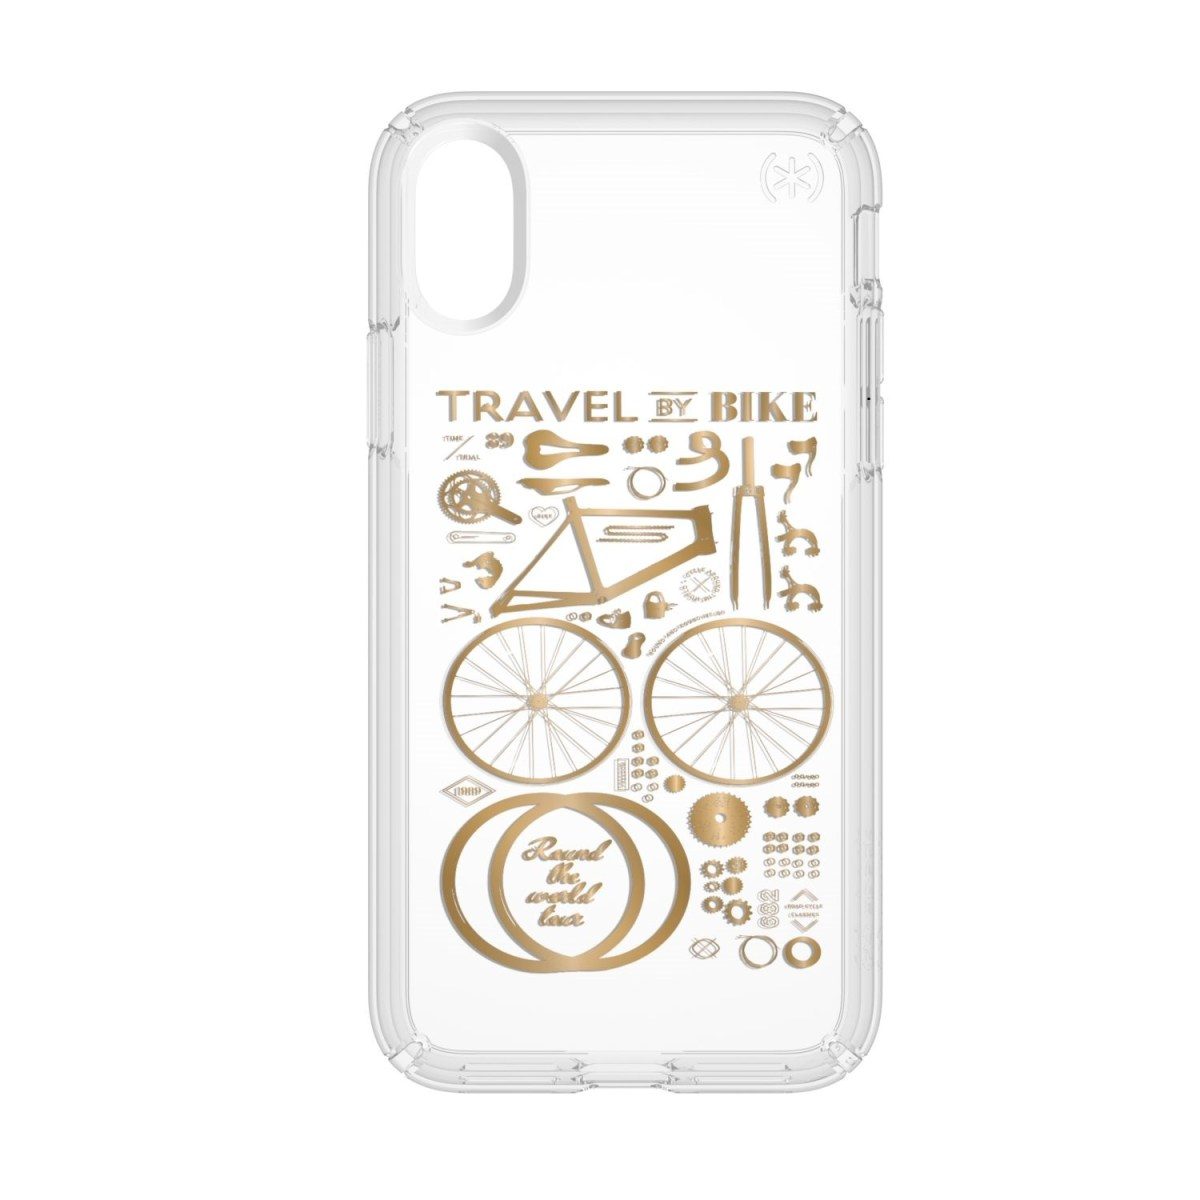 Carcasa iPhone X Presidio Clear + Print - CITY BIKE METALLIC GOLD YELLOW